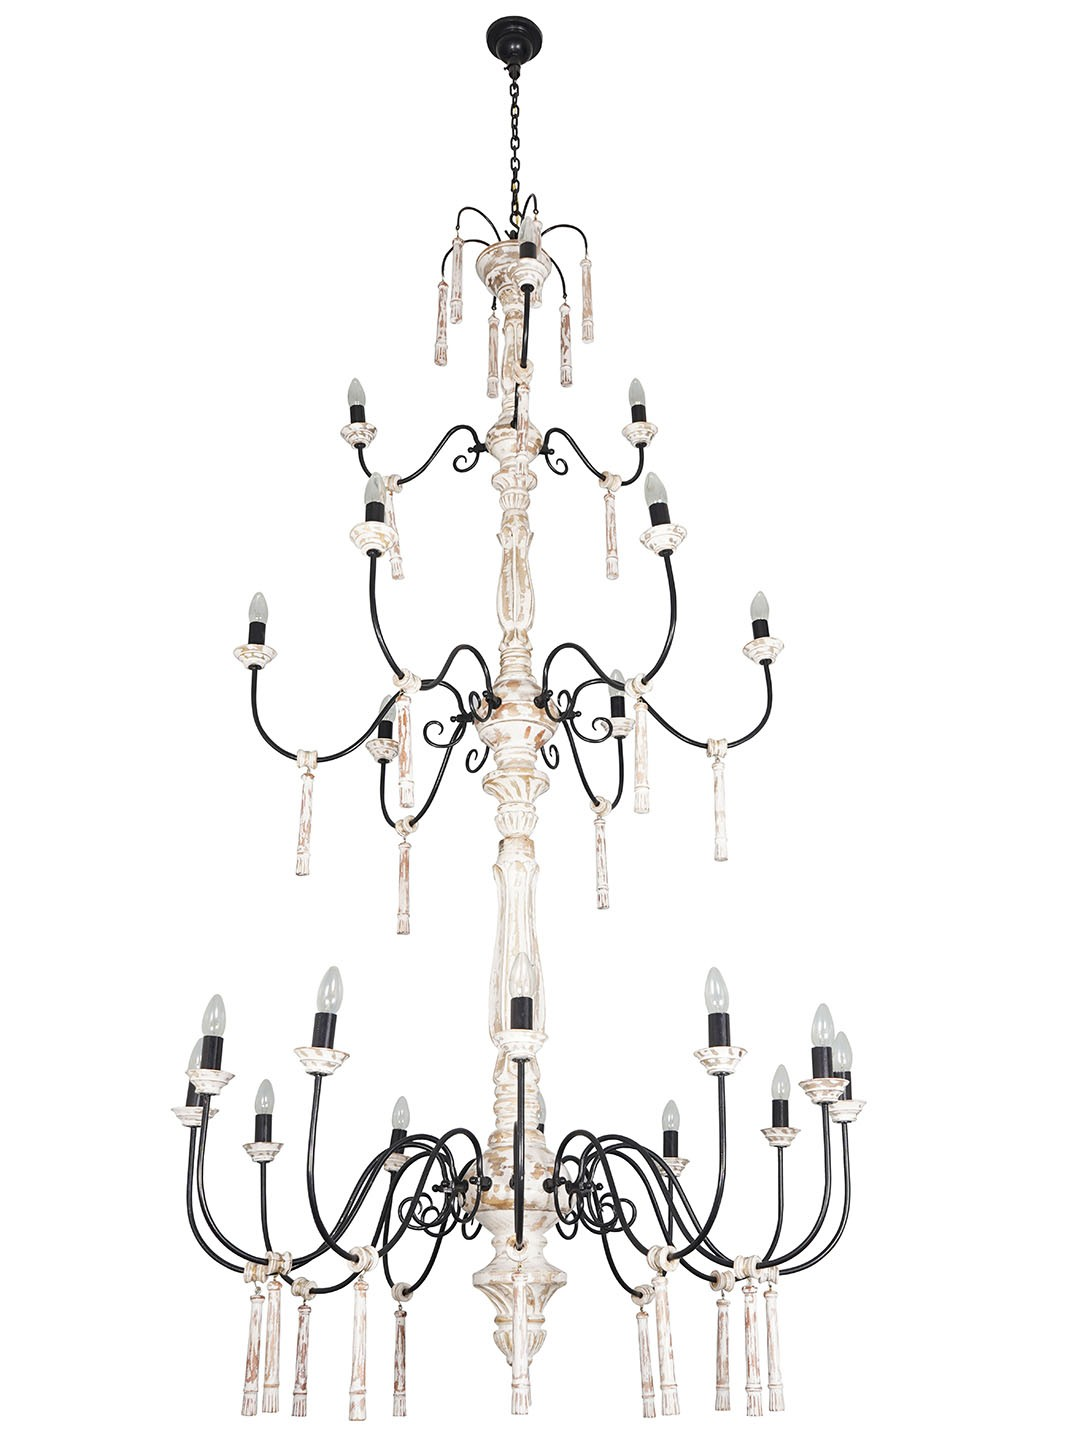 Chic French Country 21 Lights 3 Tier Rustic White Wood and Wrought iron Candelabra Chandelier